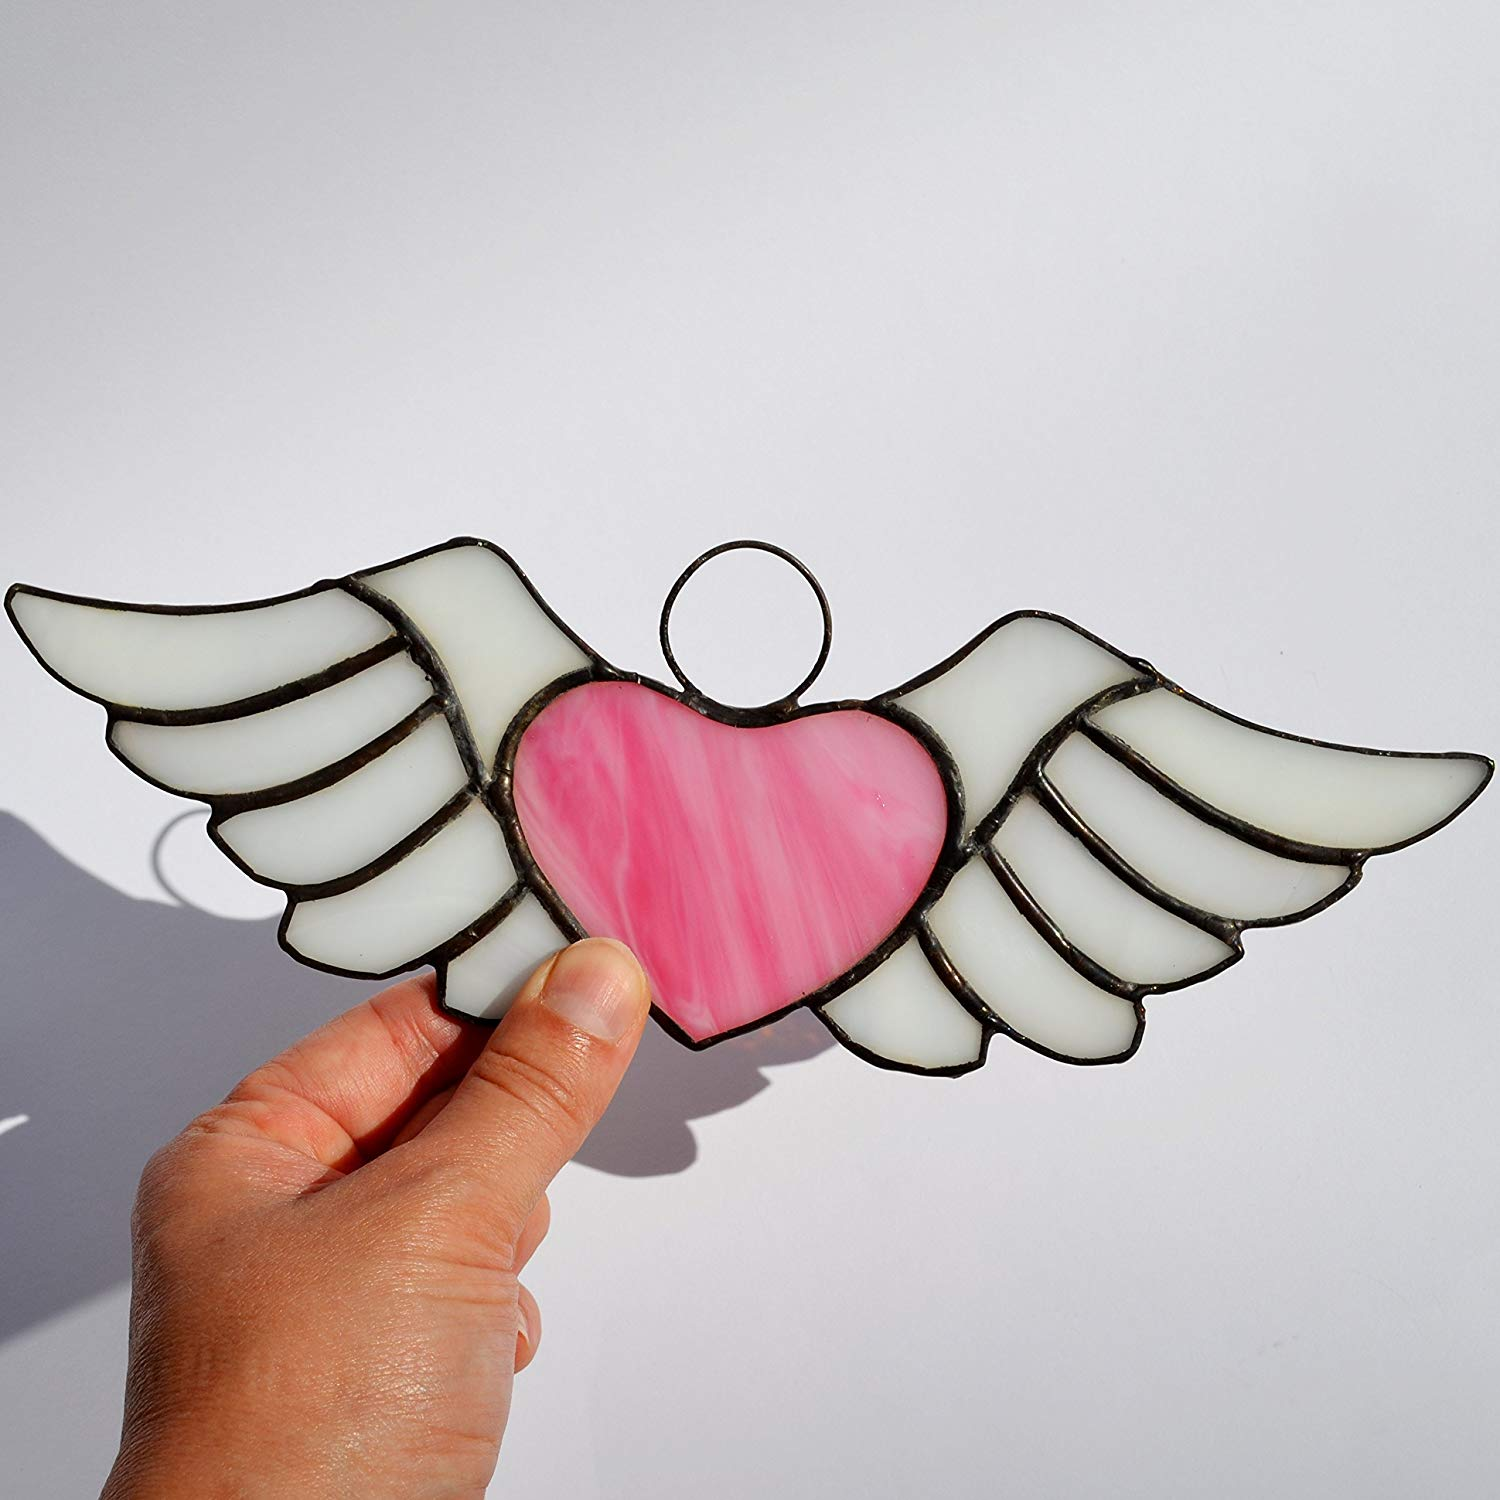 Pink heart with wings decoration made of stained glass